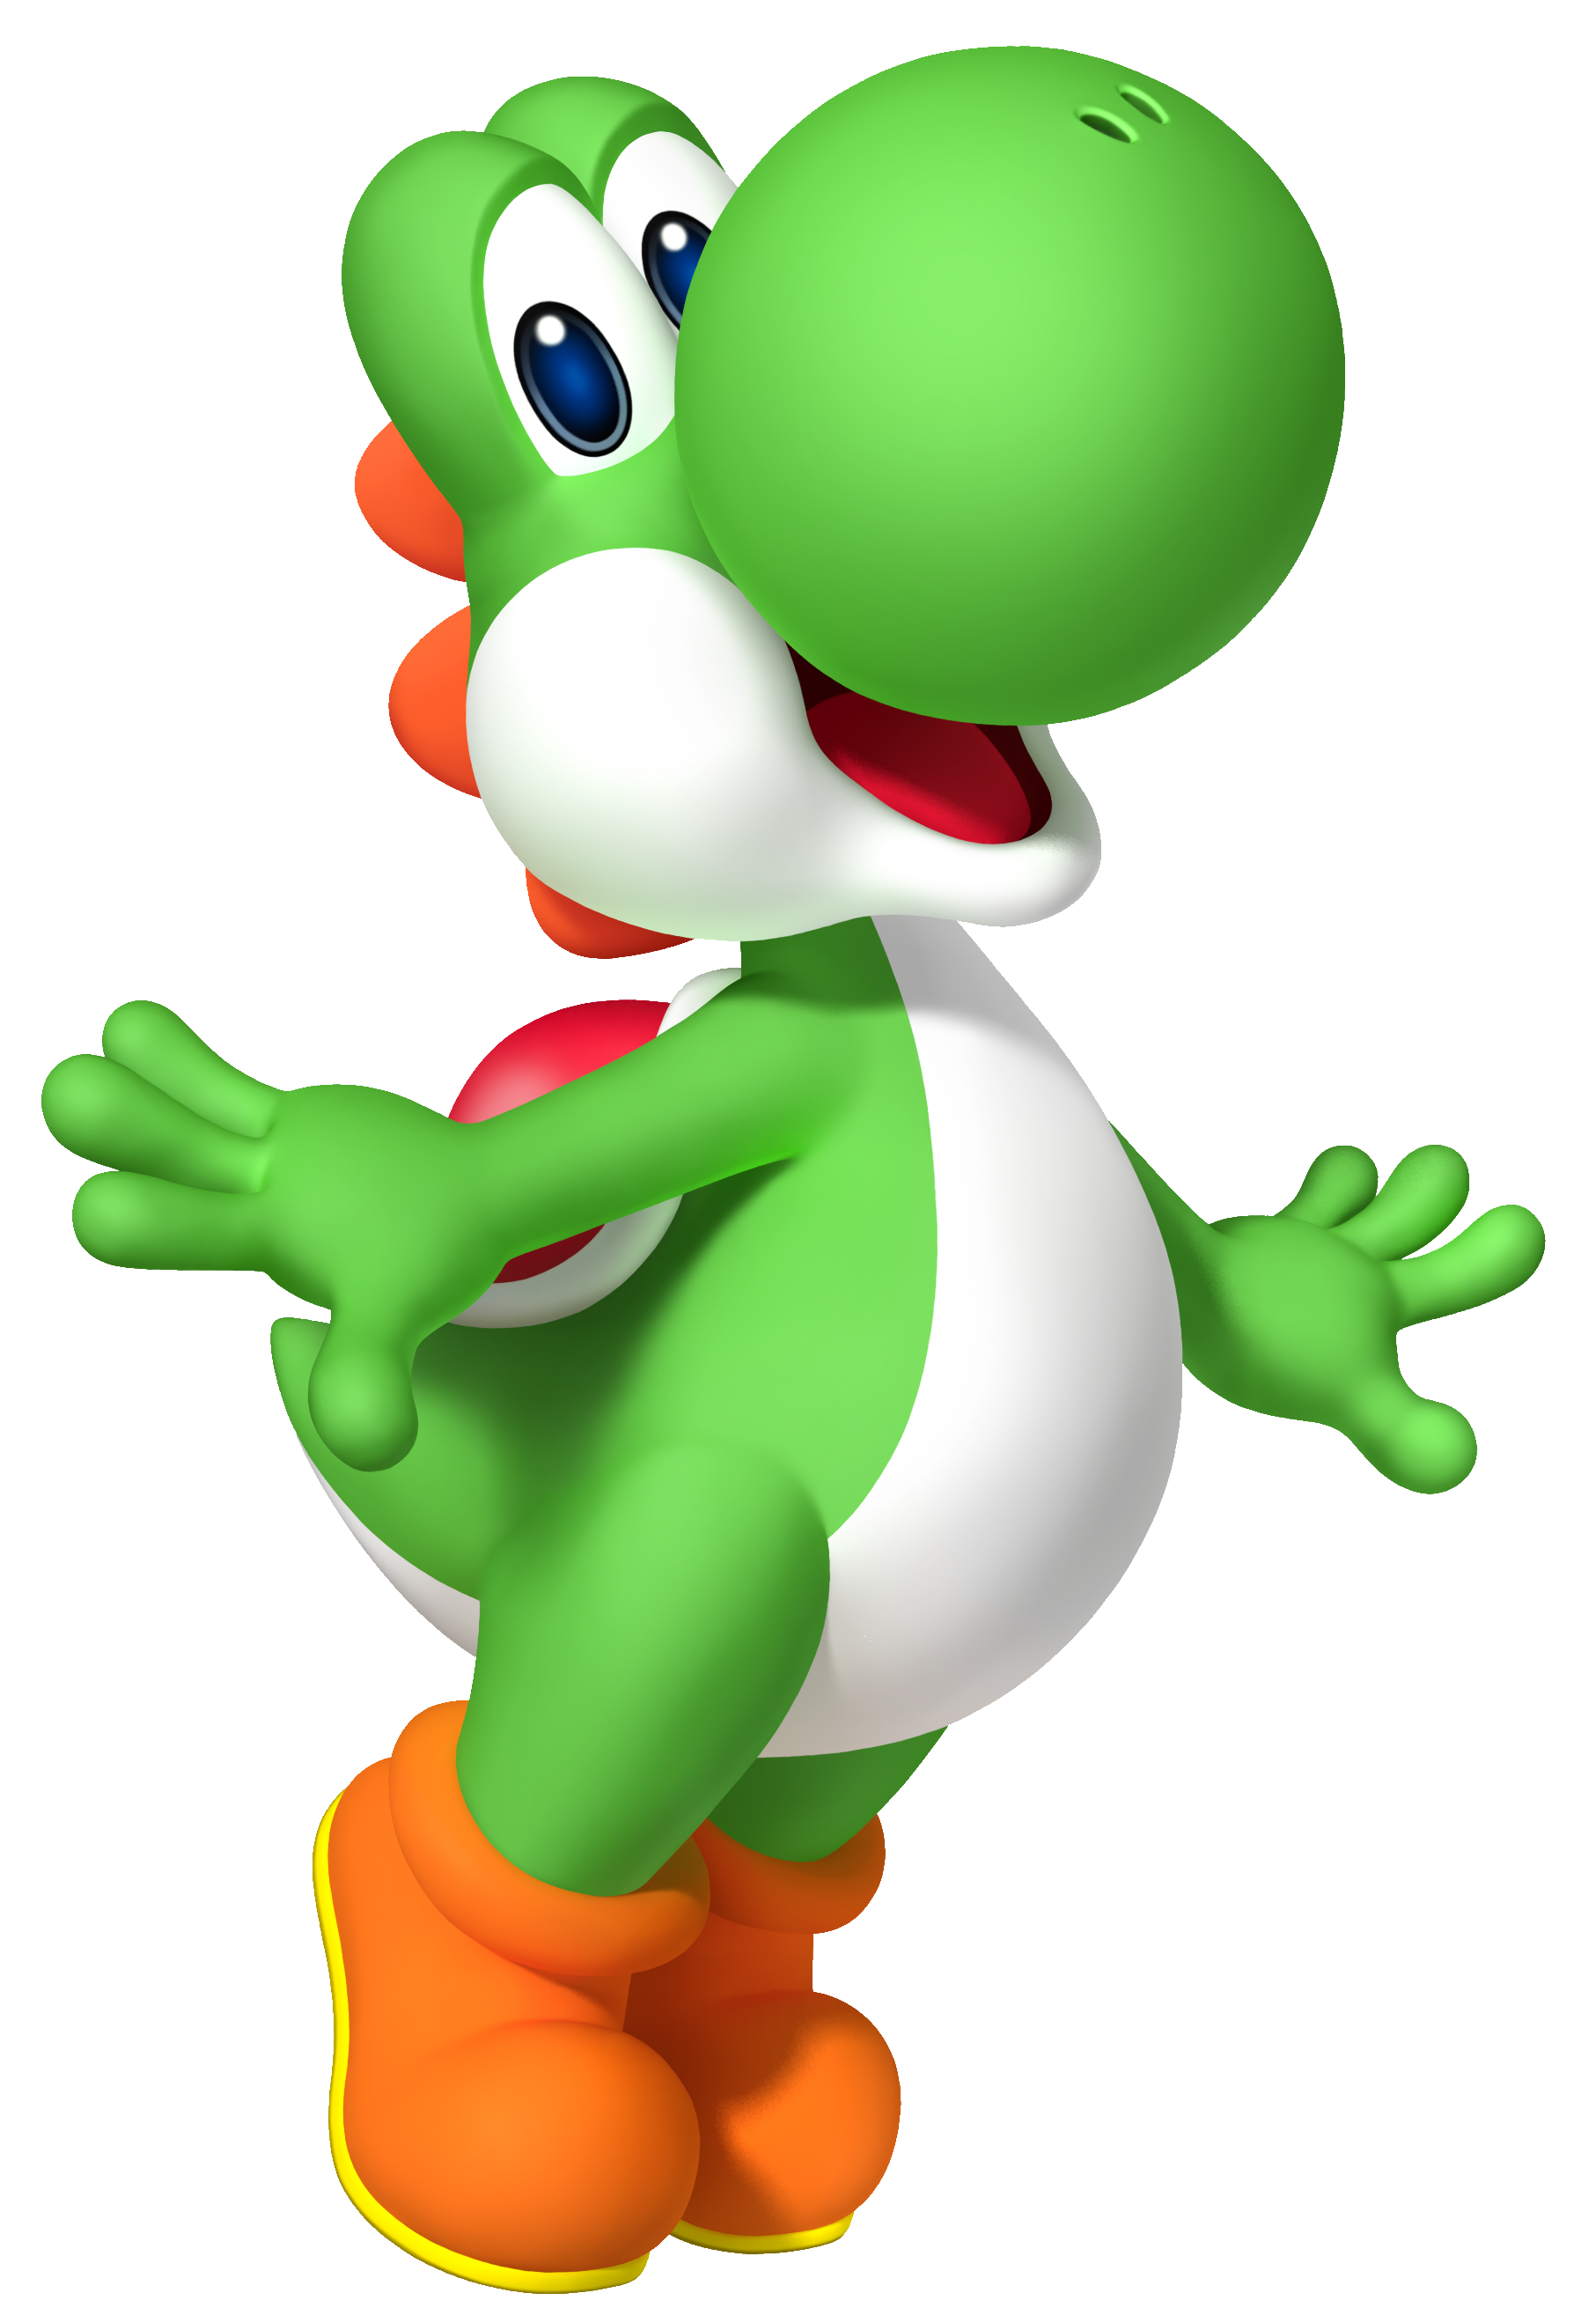 Yoshi - Yoshi Wiki, your #1 source for Yoshi information!